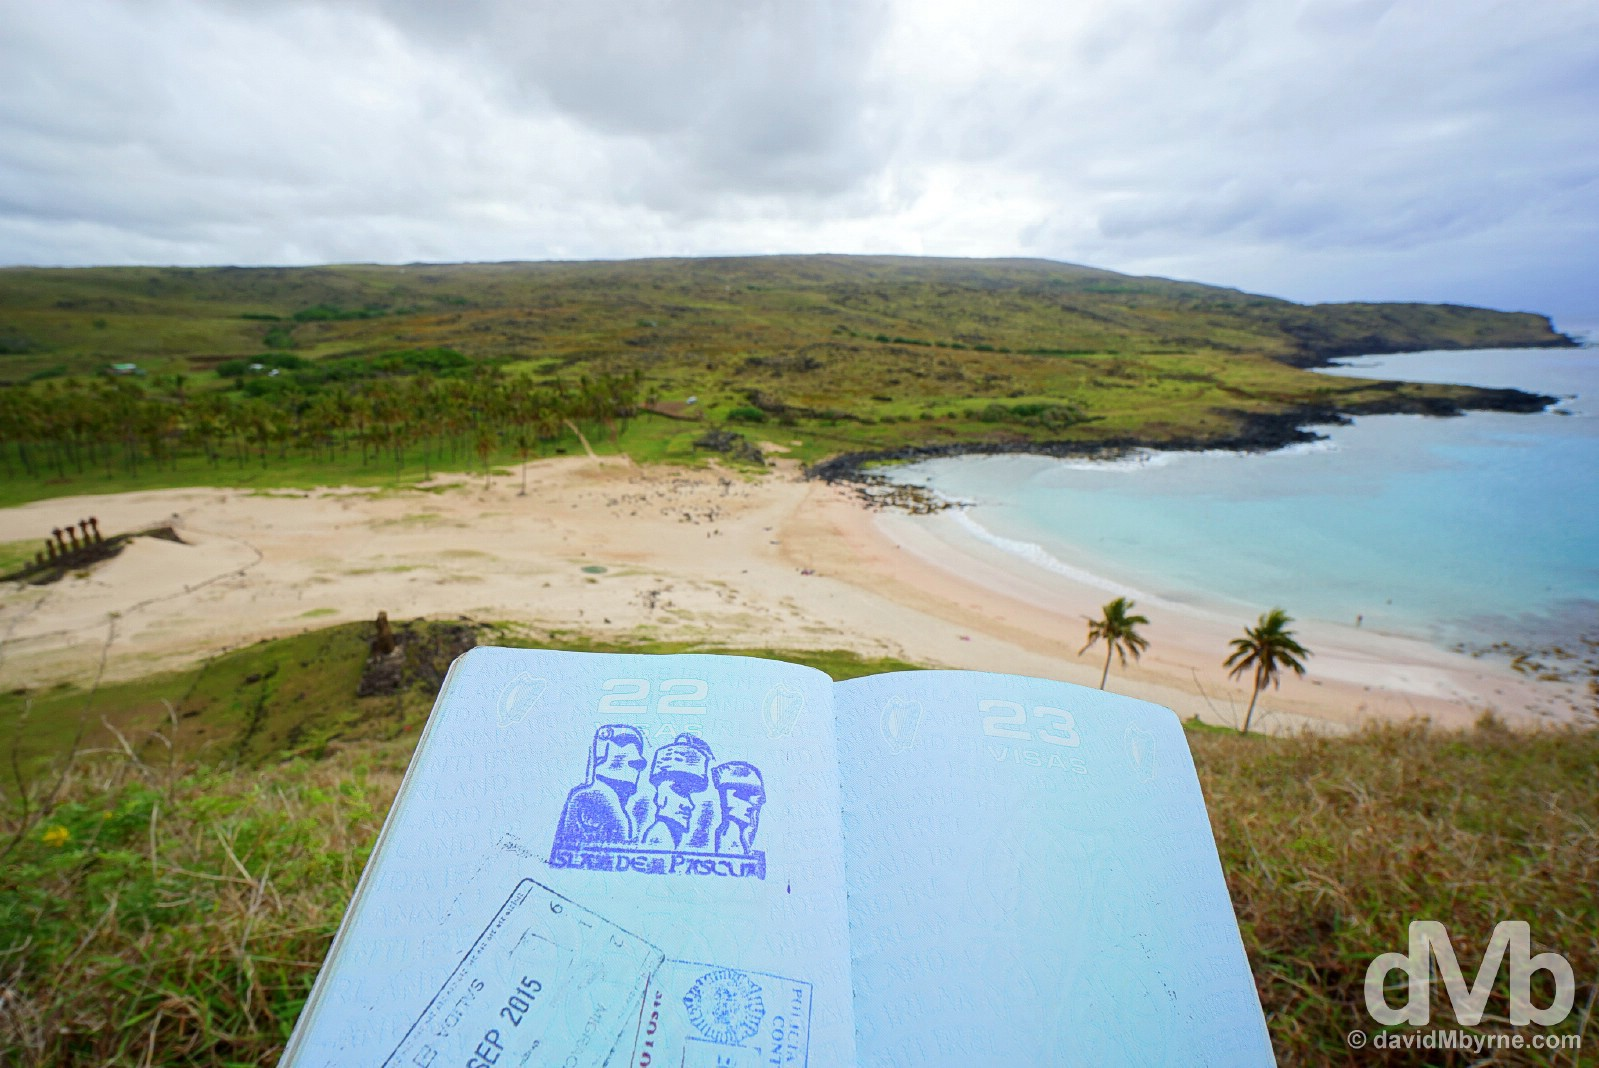 Passport stamp overlooking Anakena, Easter Island, Chile. October 2, 2015.